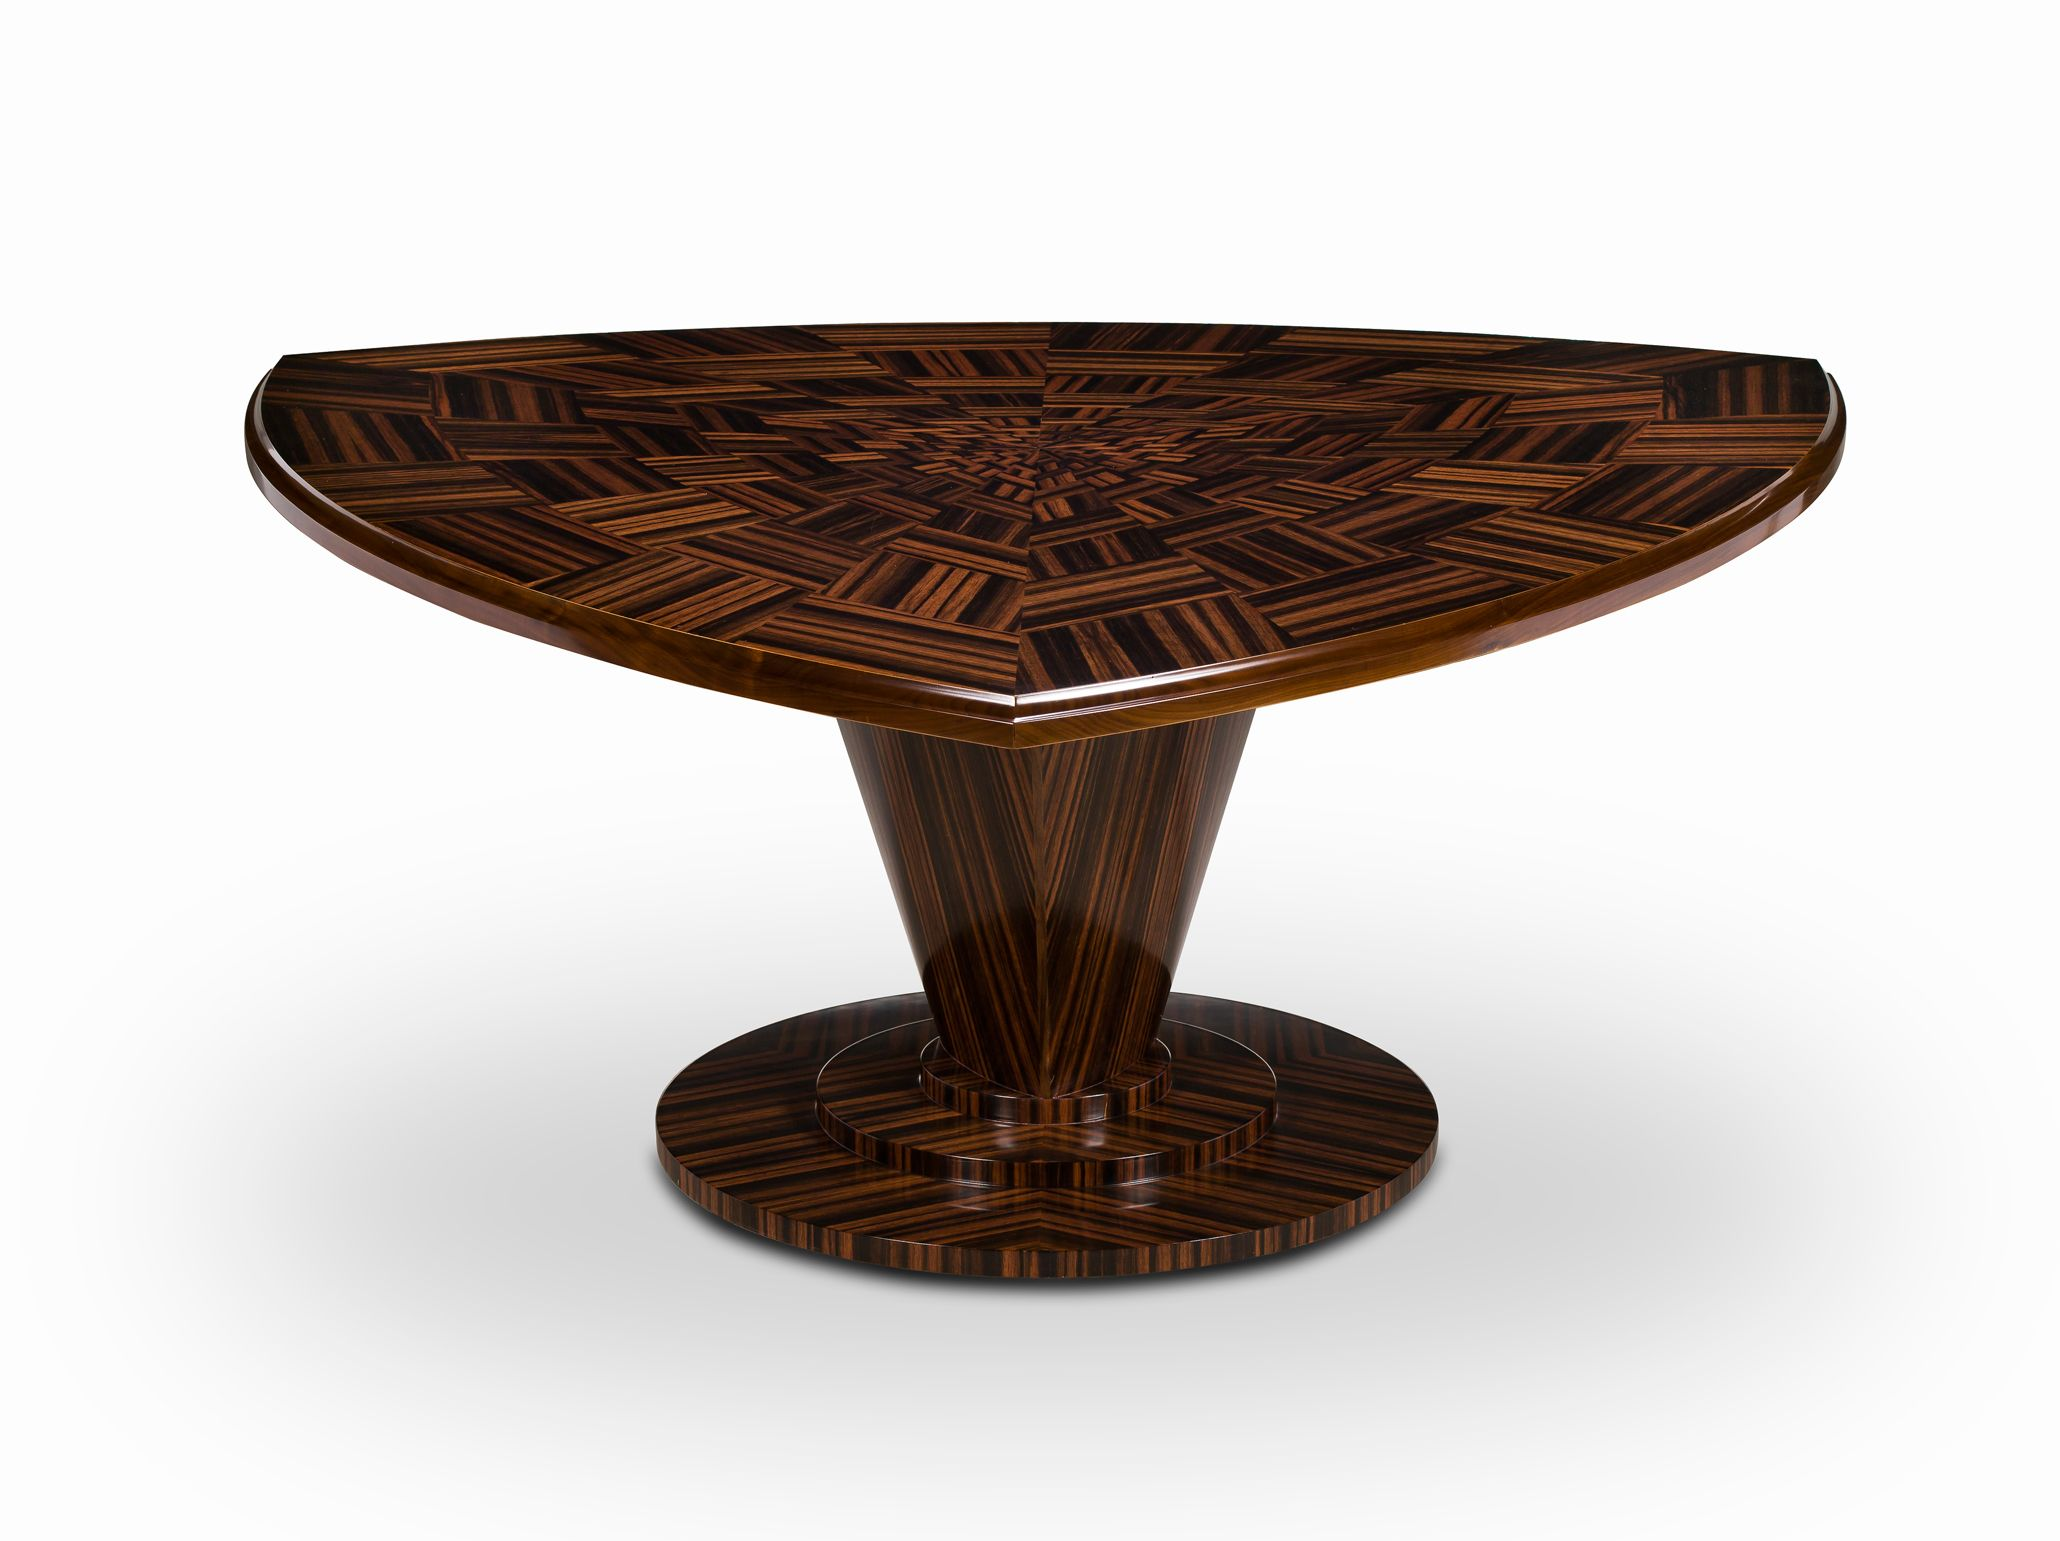 italian furniture manufacturers. Italian Furniture Manufacturers   Carved Details The 59 Year Old Manufacturer A